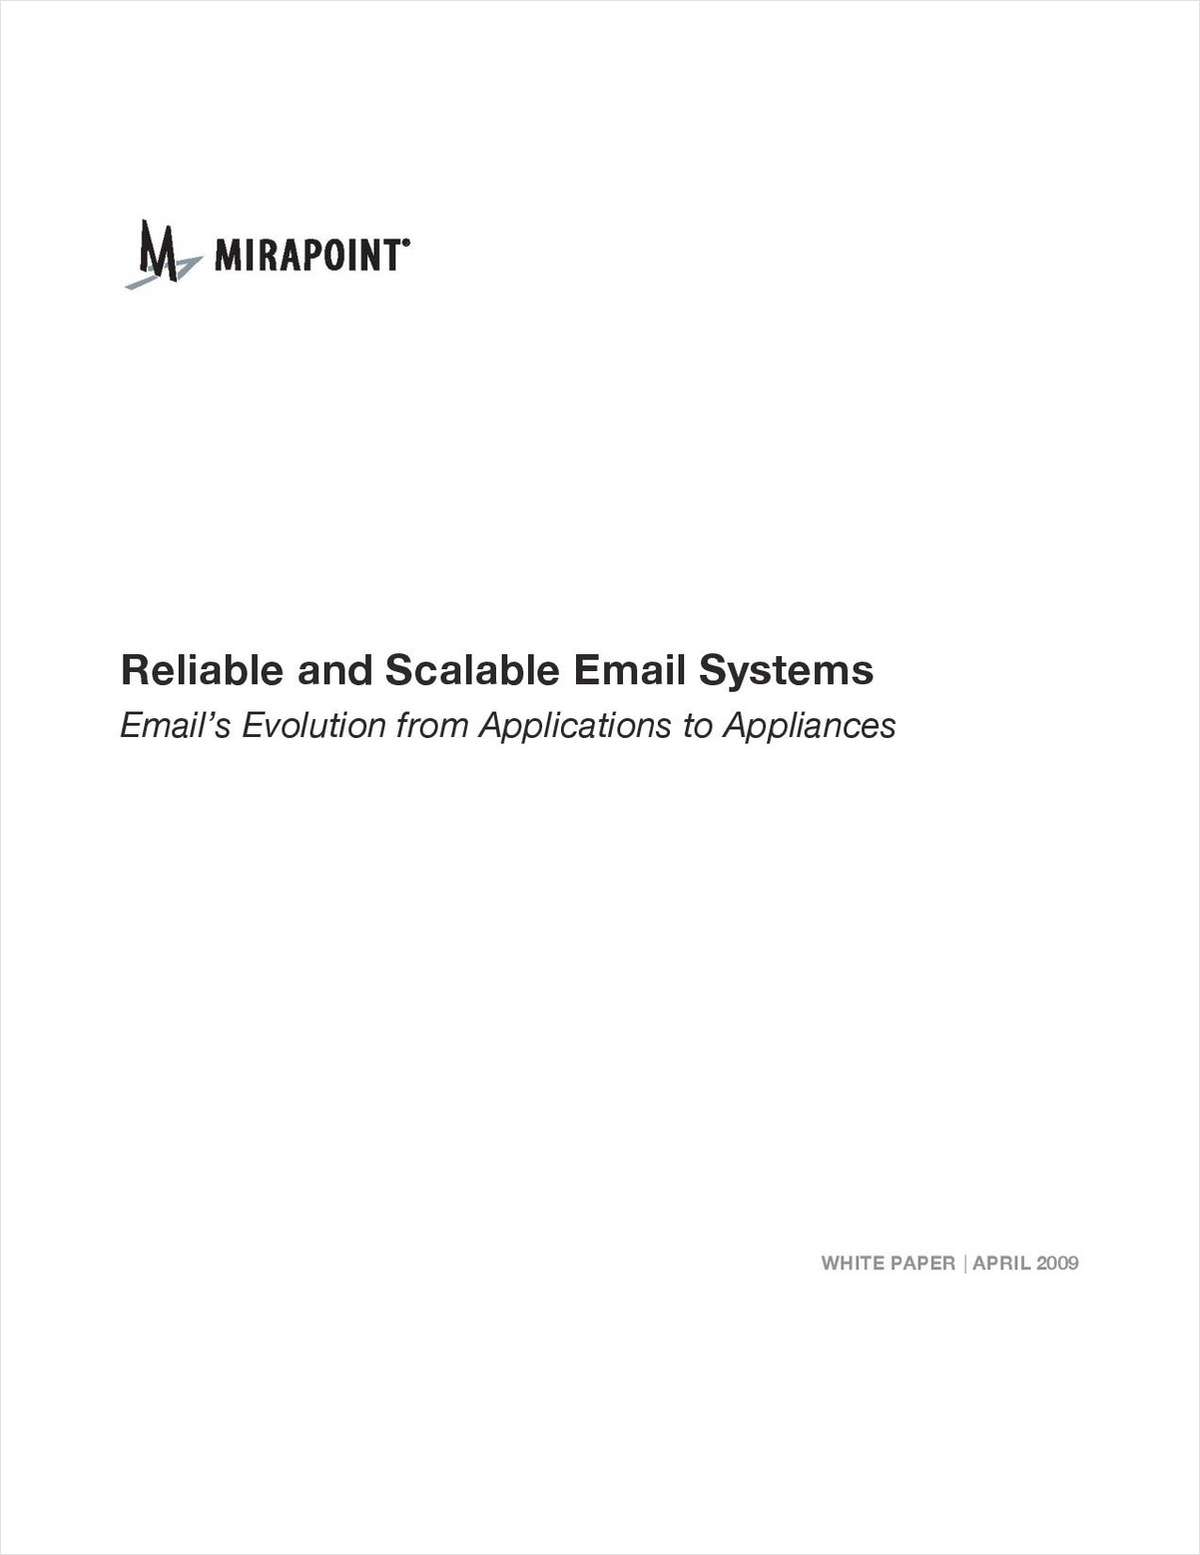 How to Build and Architect a Reliable and Scalable Enterprise Level Email System